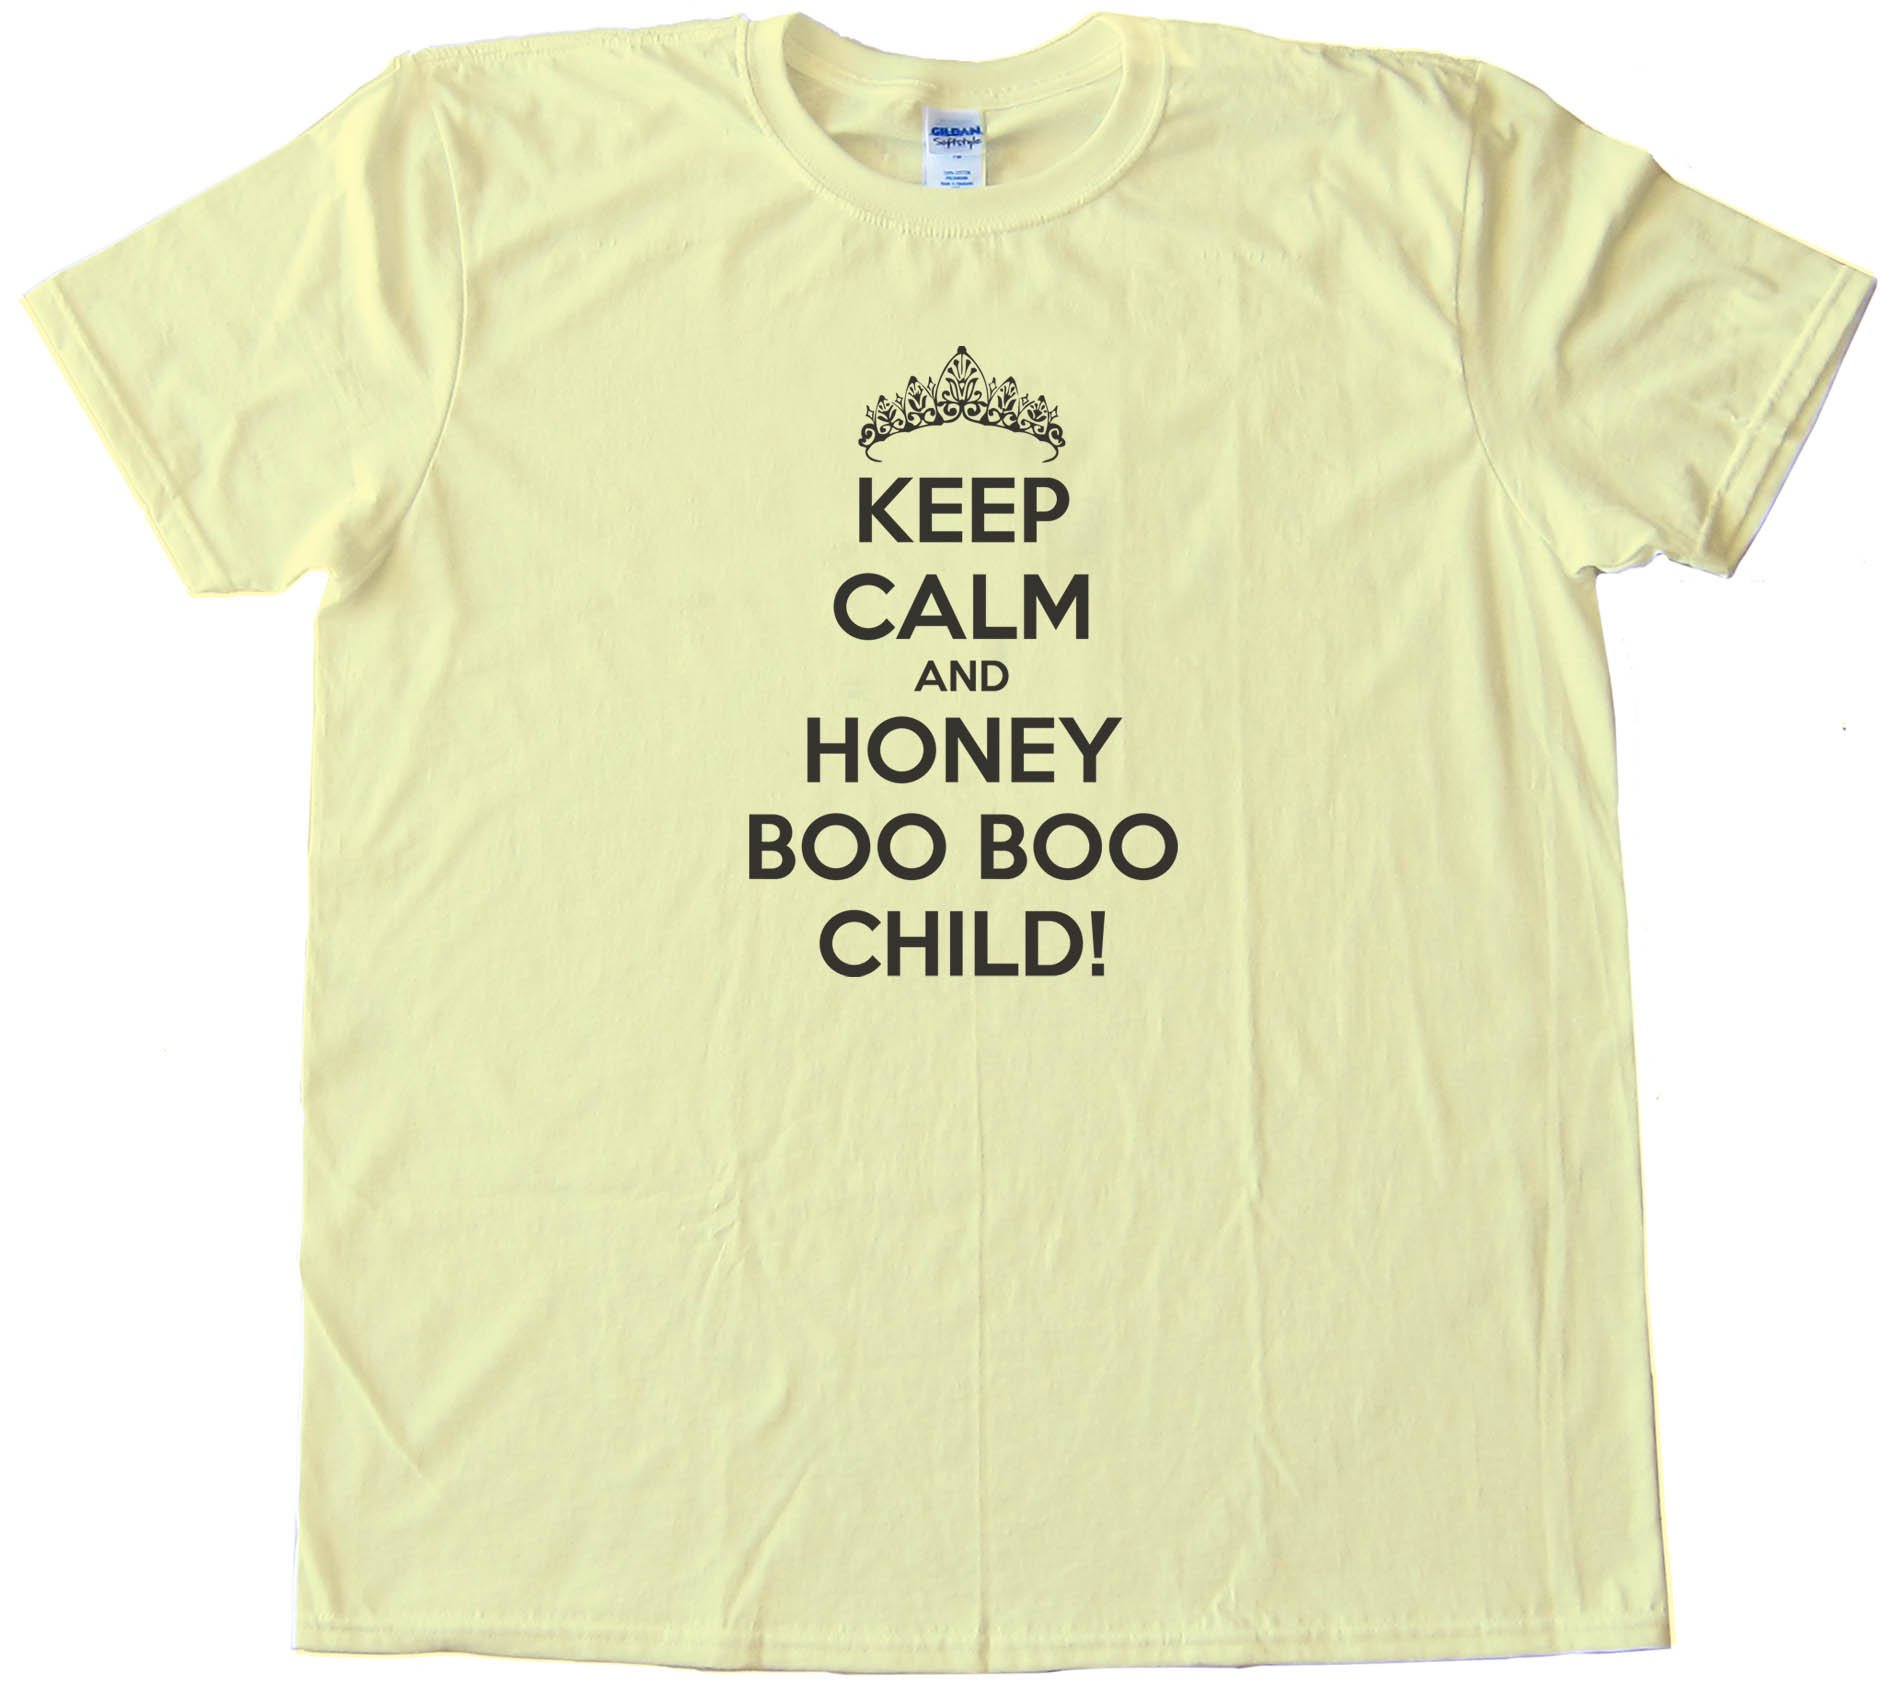 Keep Calm And Honey Boo Boo Child! - Tee Shirt